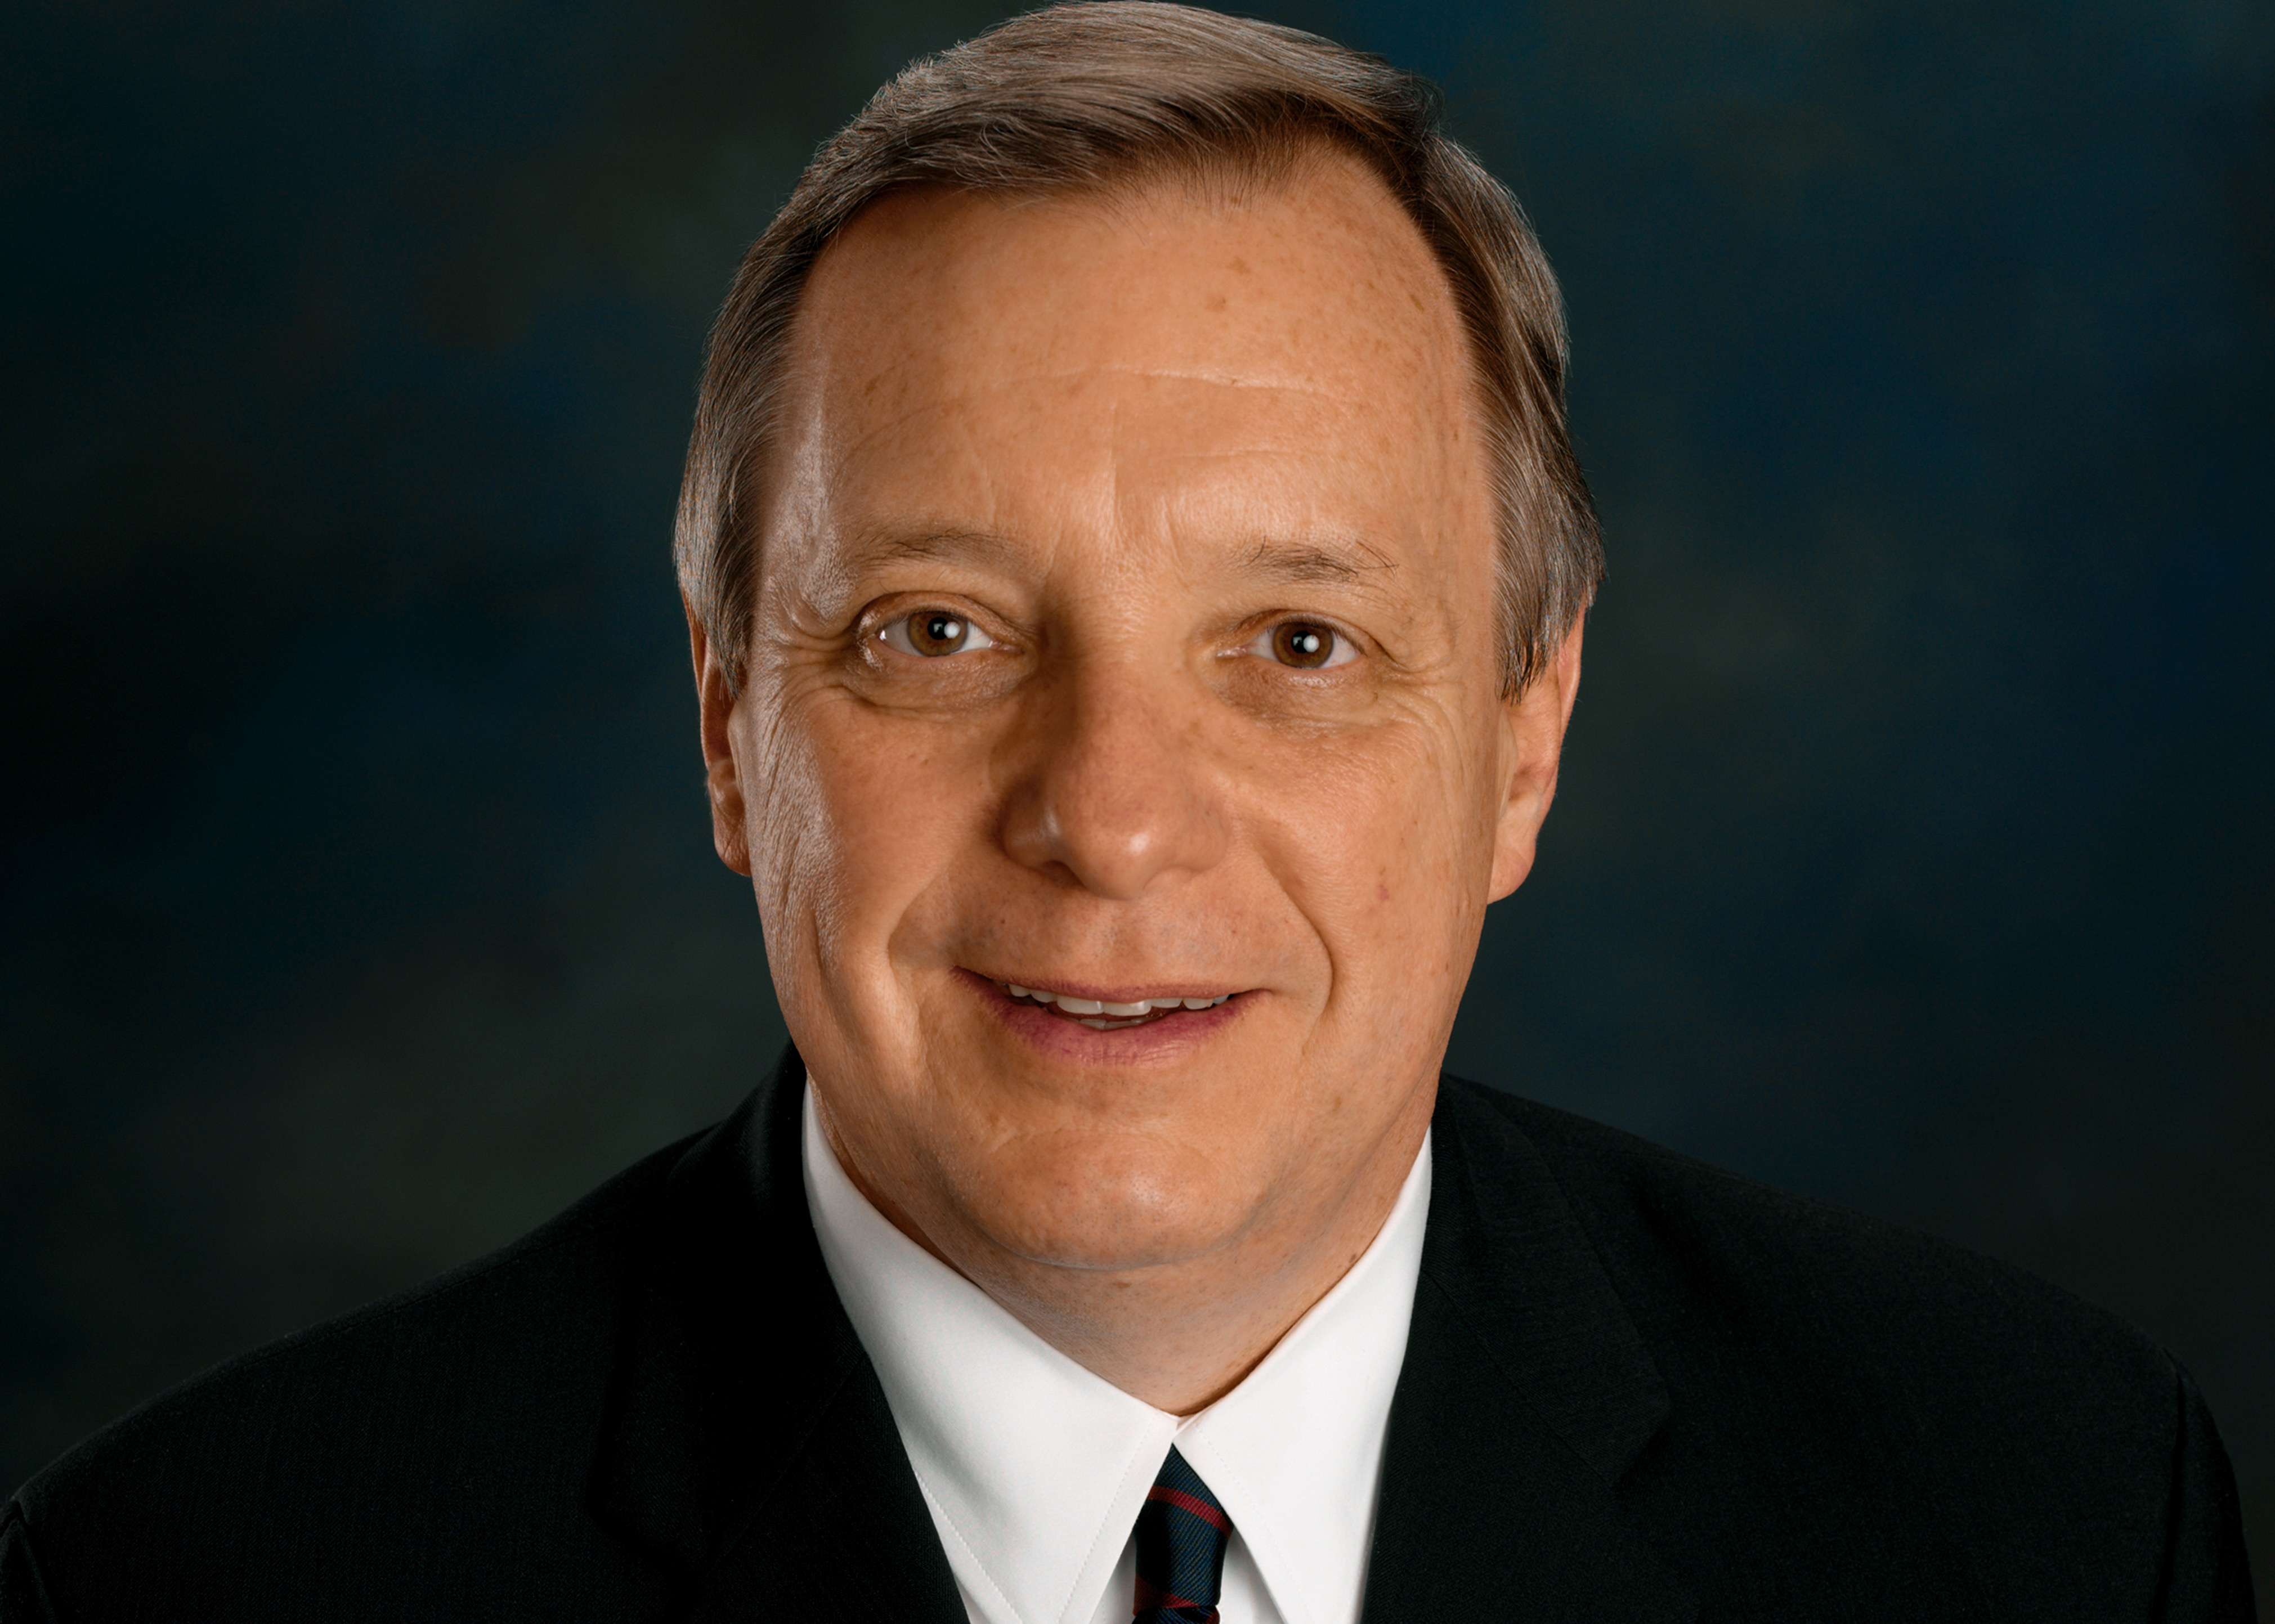 Dissenting Catholic Dick Durbin Tells Dems Not to Dissent From Party on Abortion